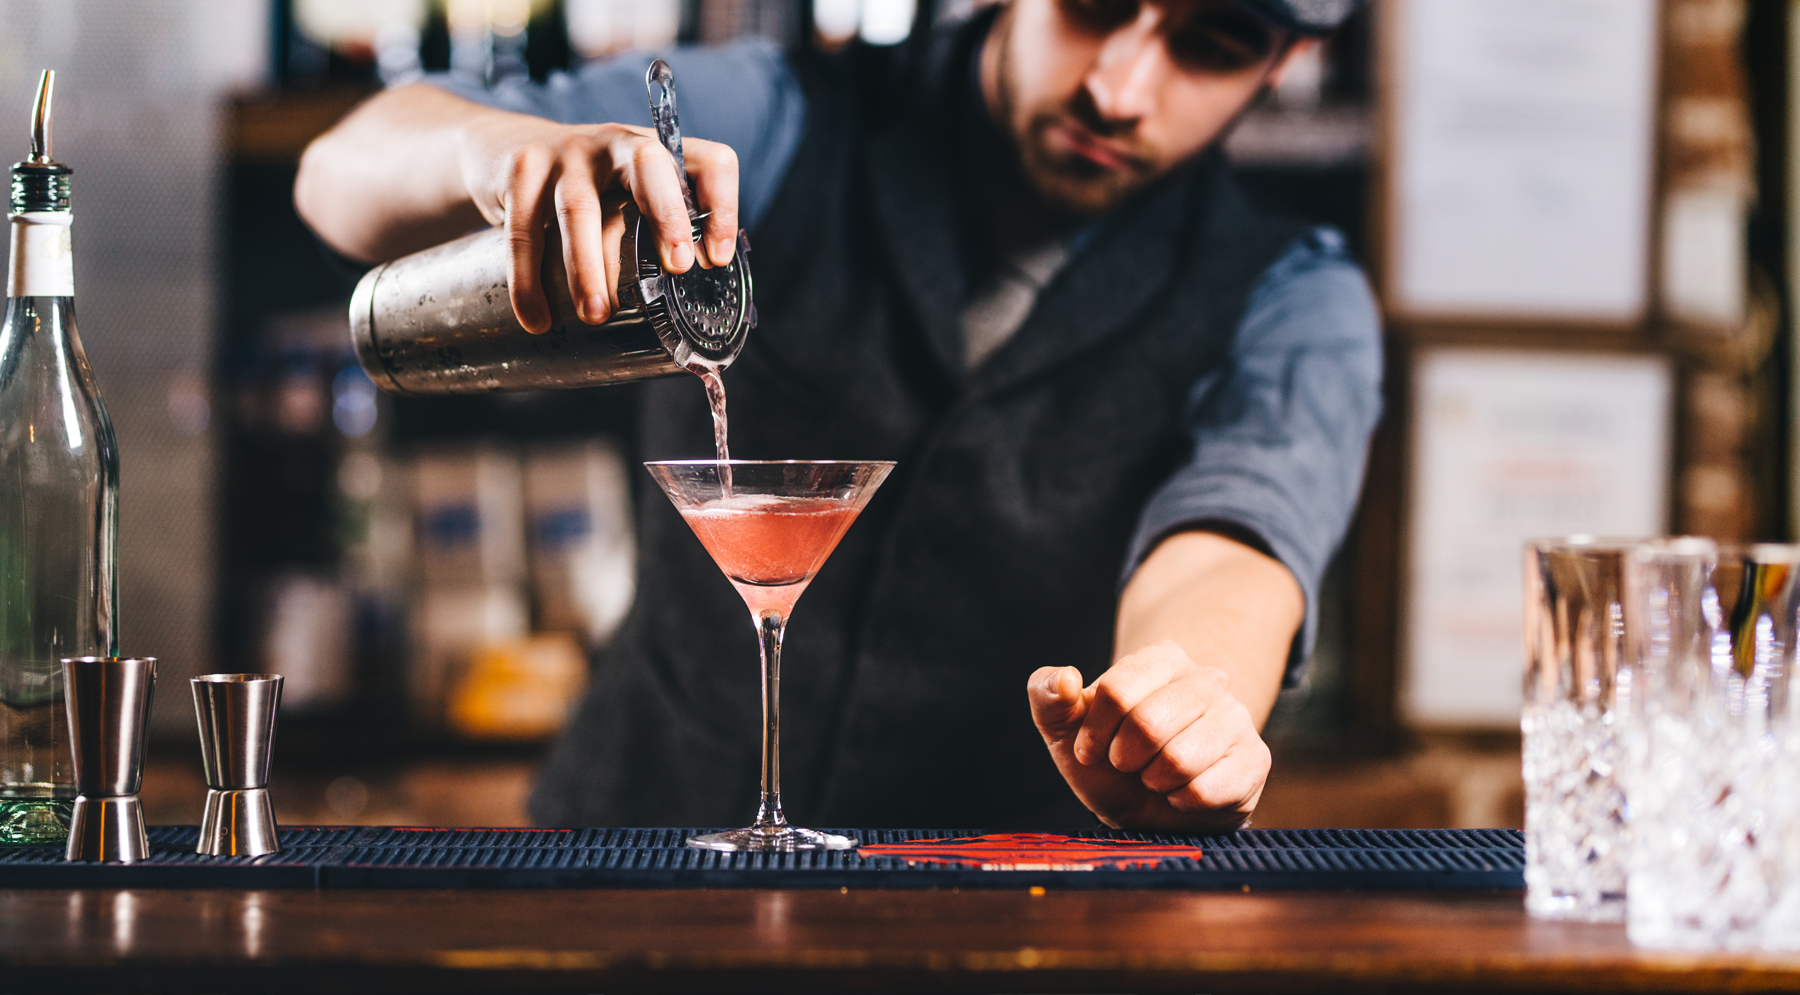 COCKTAIL EVENT SERVICE